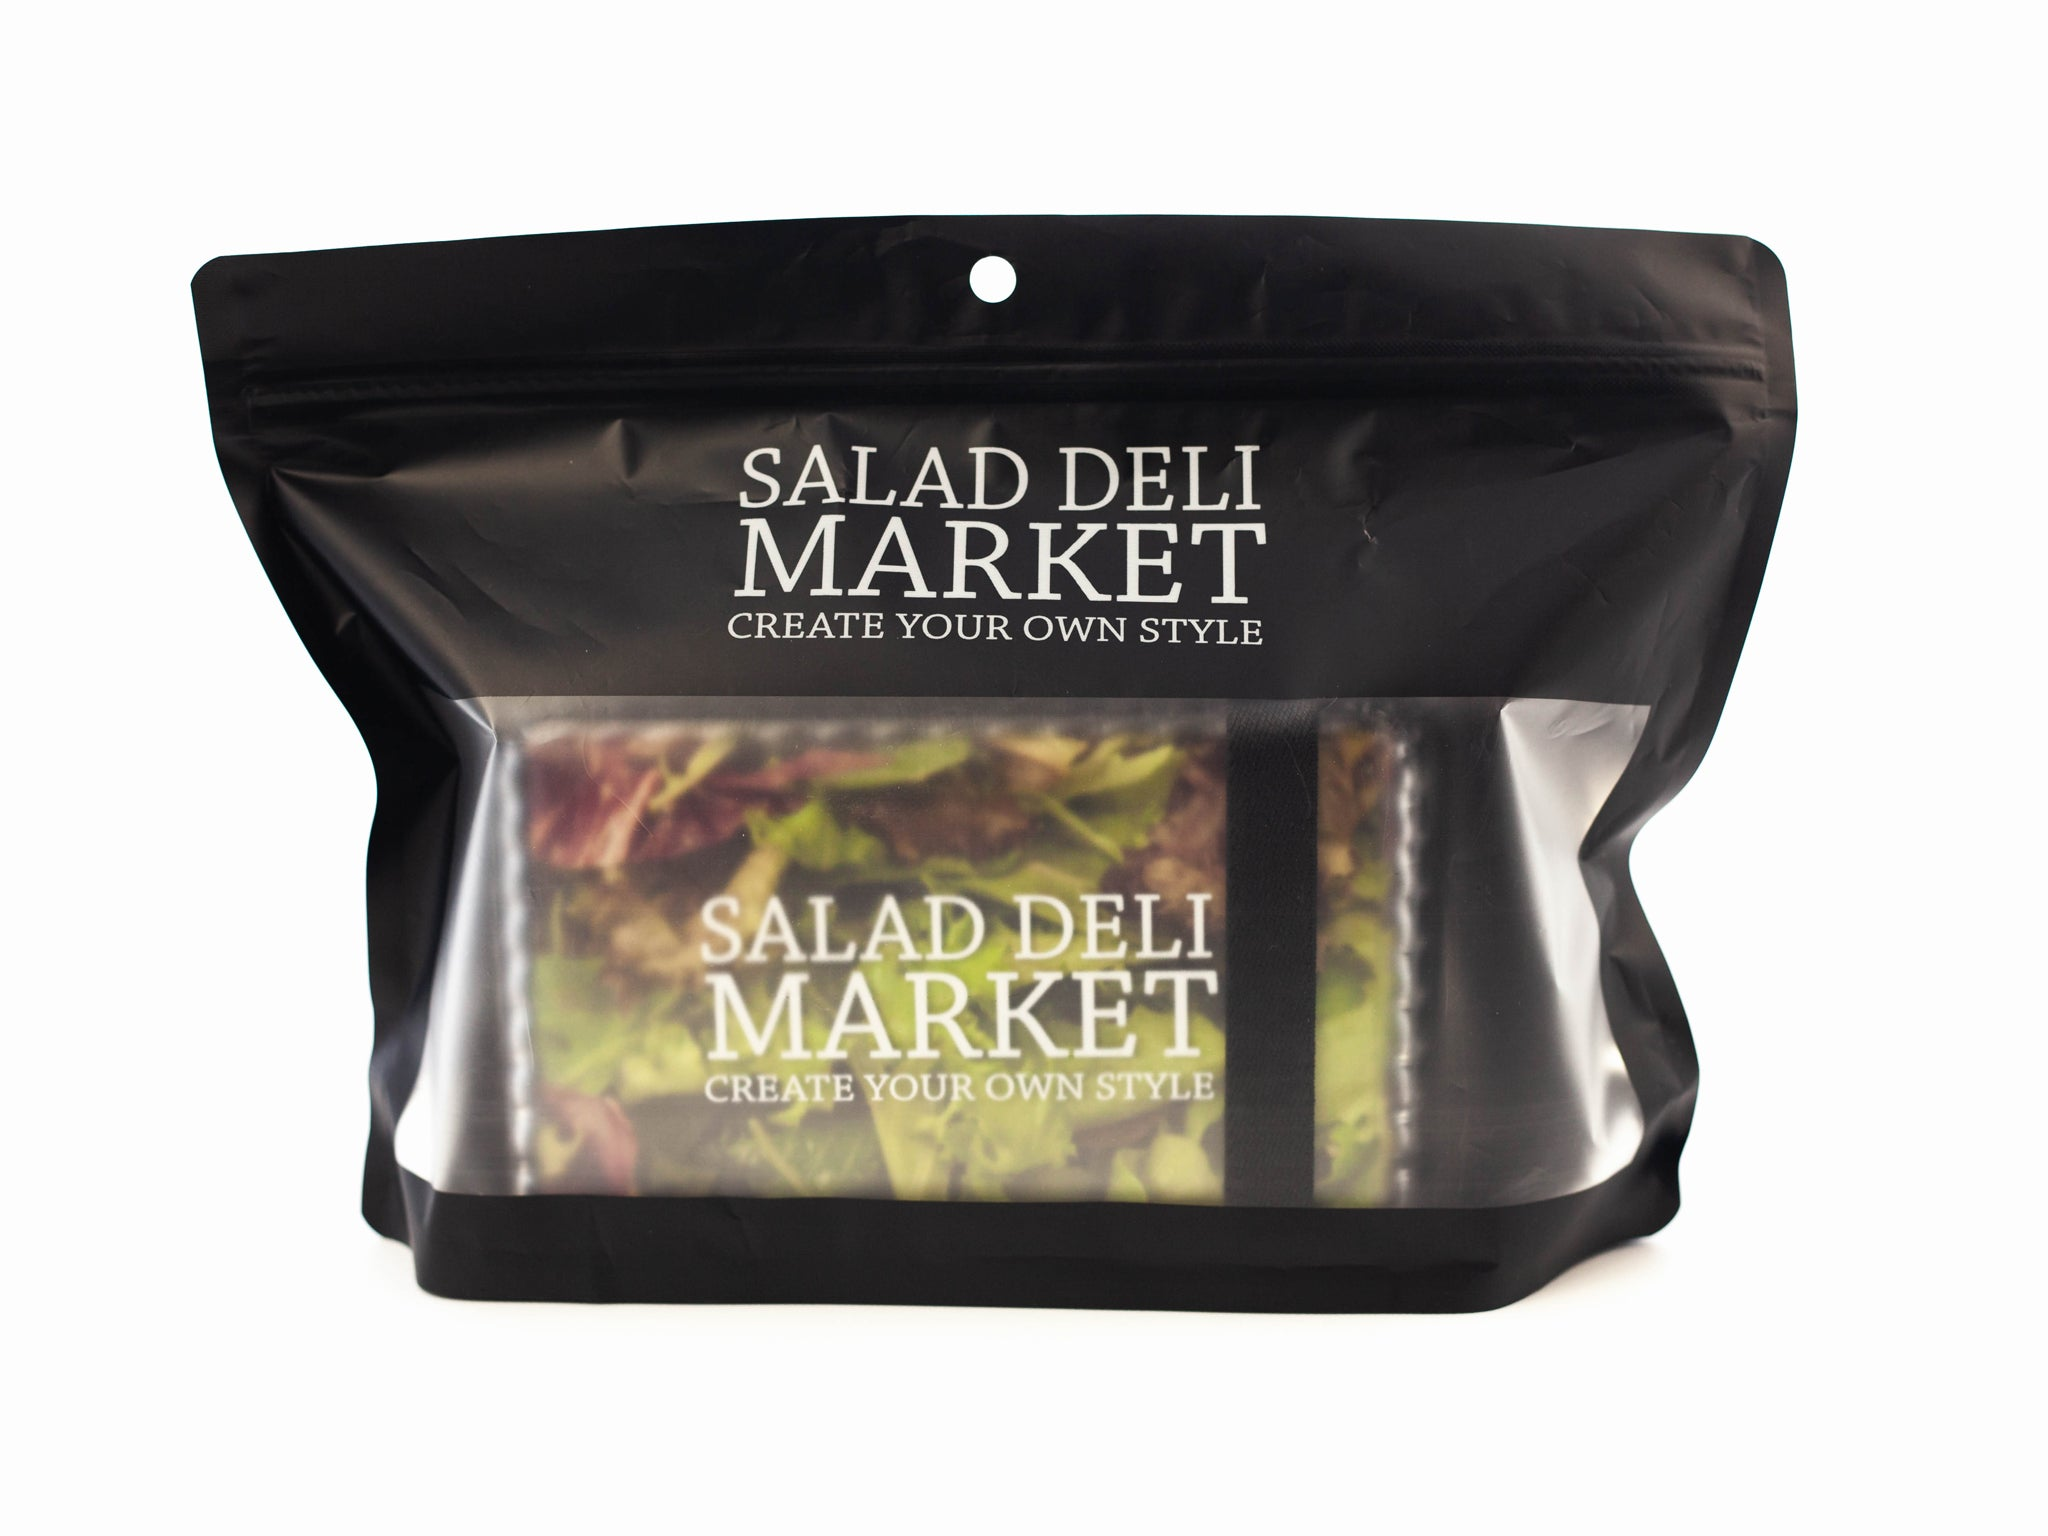 Salad Deli Market Bento Box | Black by Showa - Bento&co Japanese Bento Lunch Boxes and Kitchenware Specialists